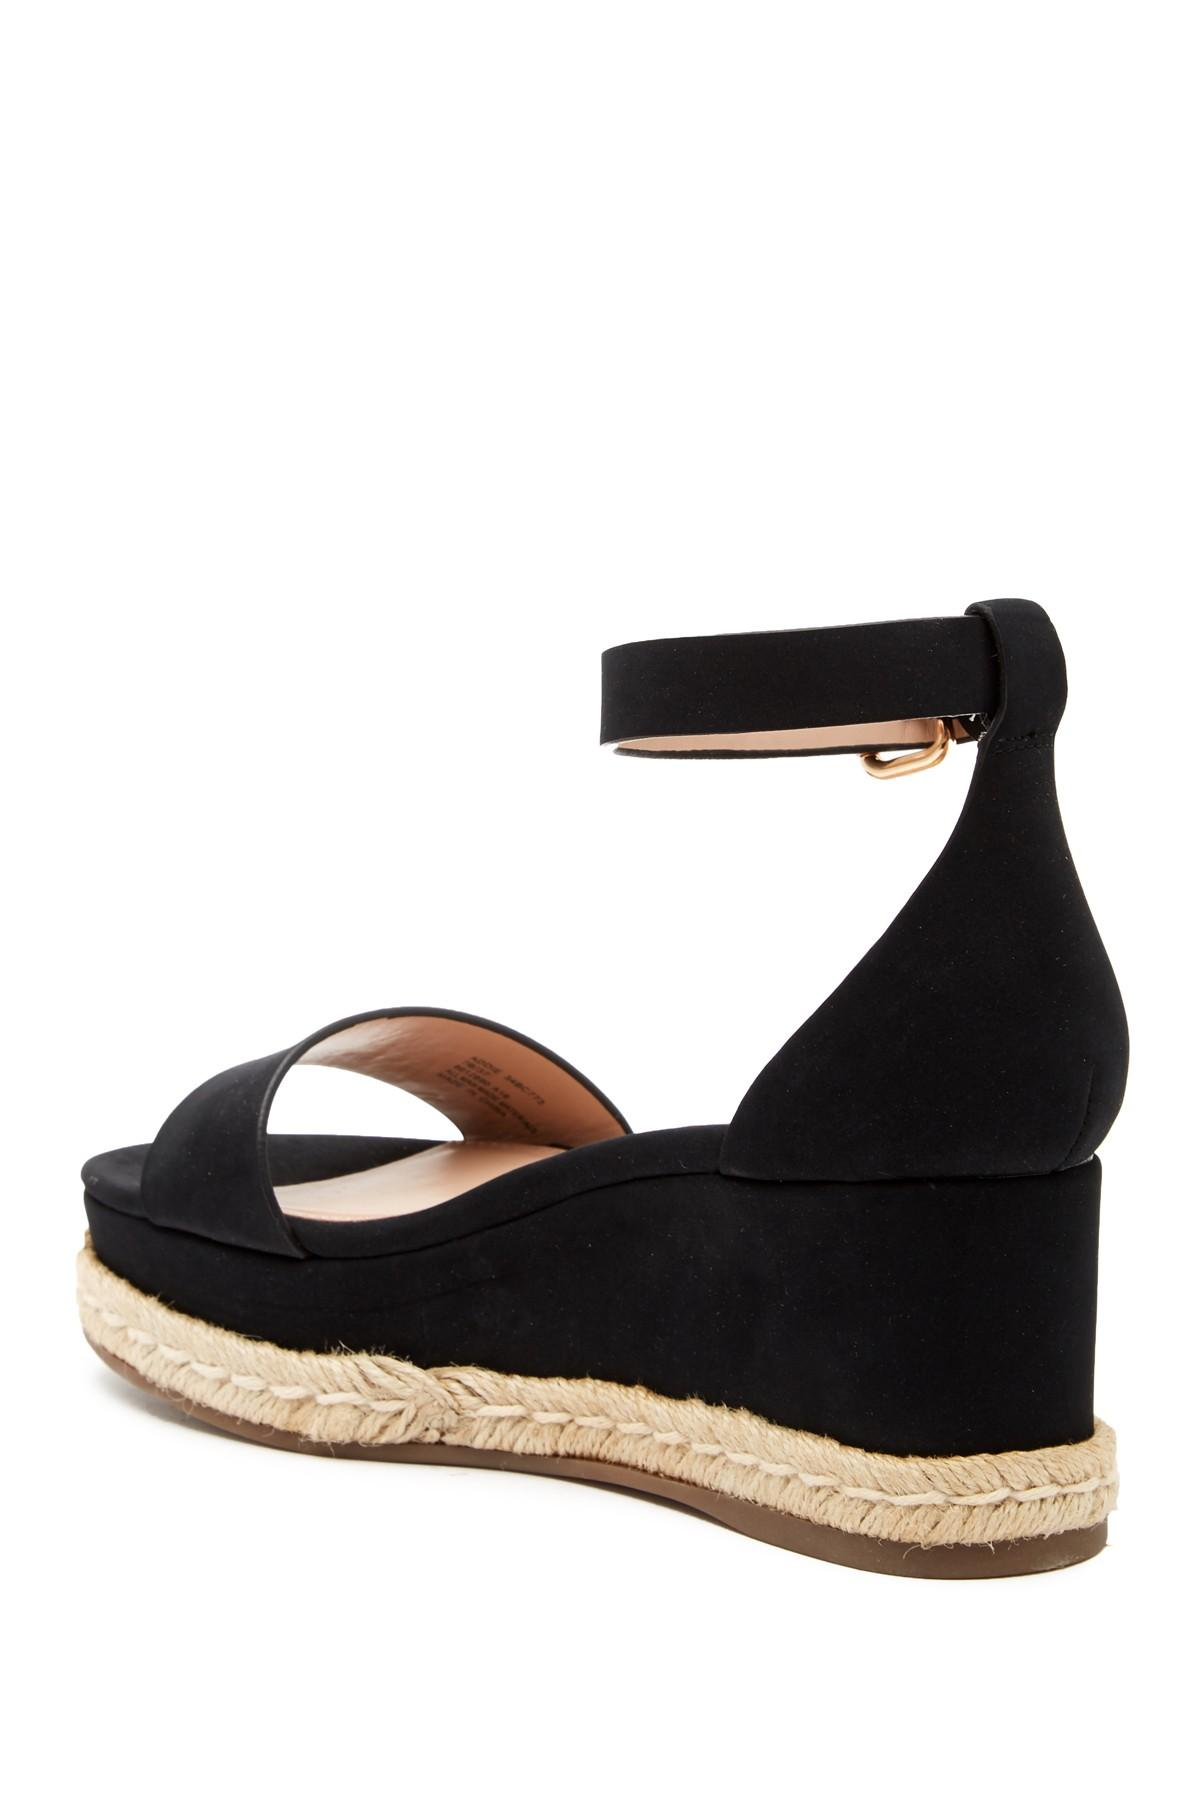 afbb1cbdf82 BCBGeneration - Black Addie Espadrille Wedge Sandals - Lyst. View fullscreen